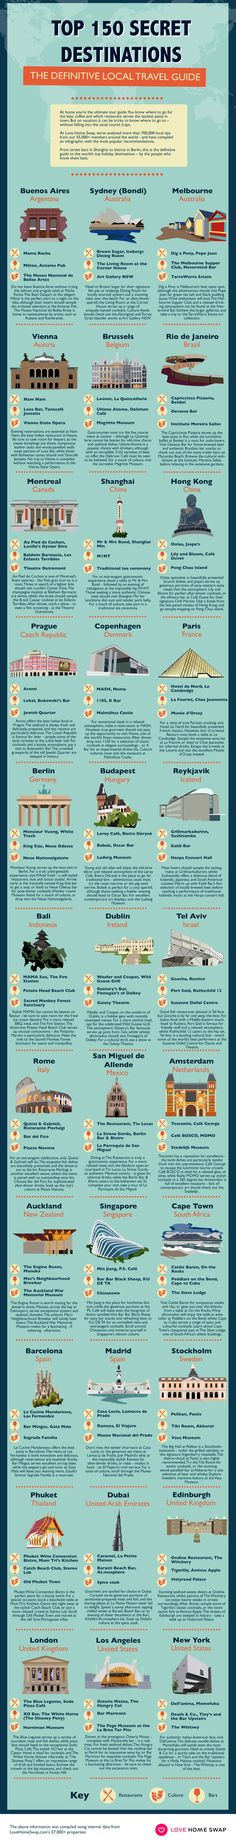 Top 150 Secret Destinations   #infographic #Travel